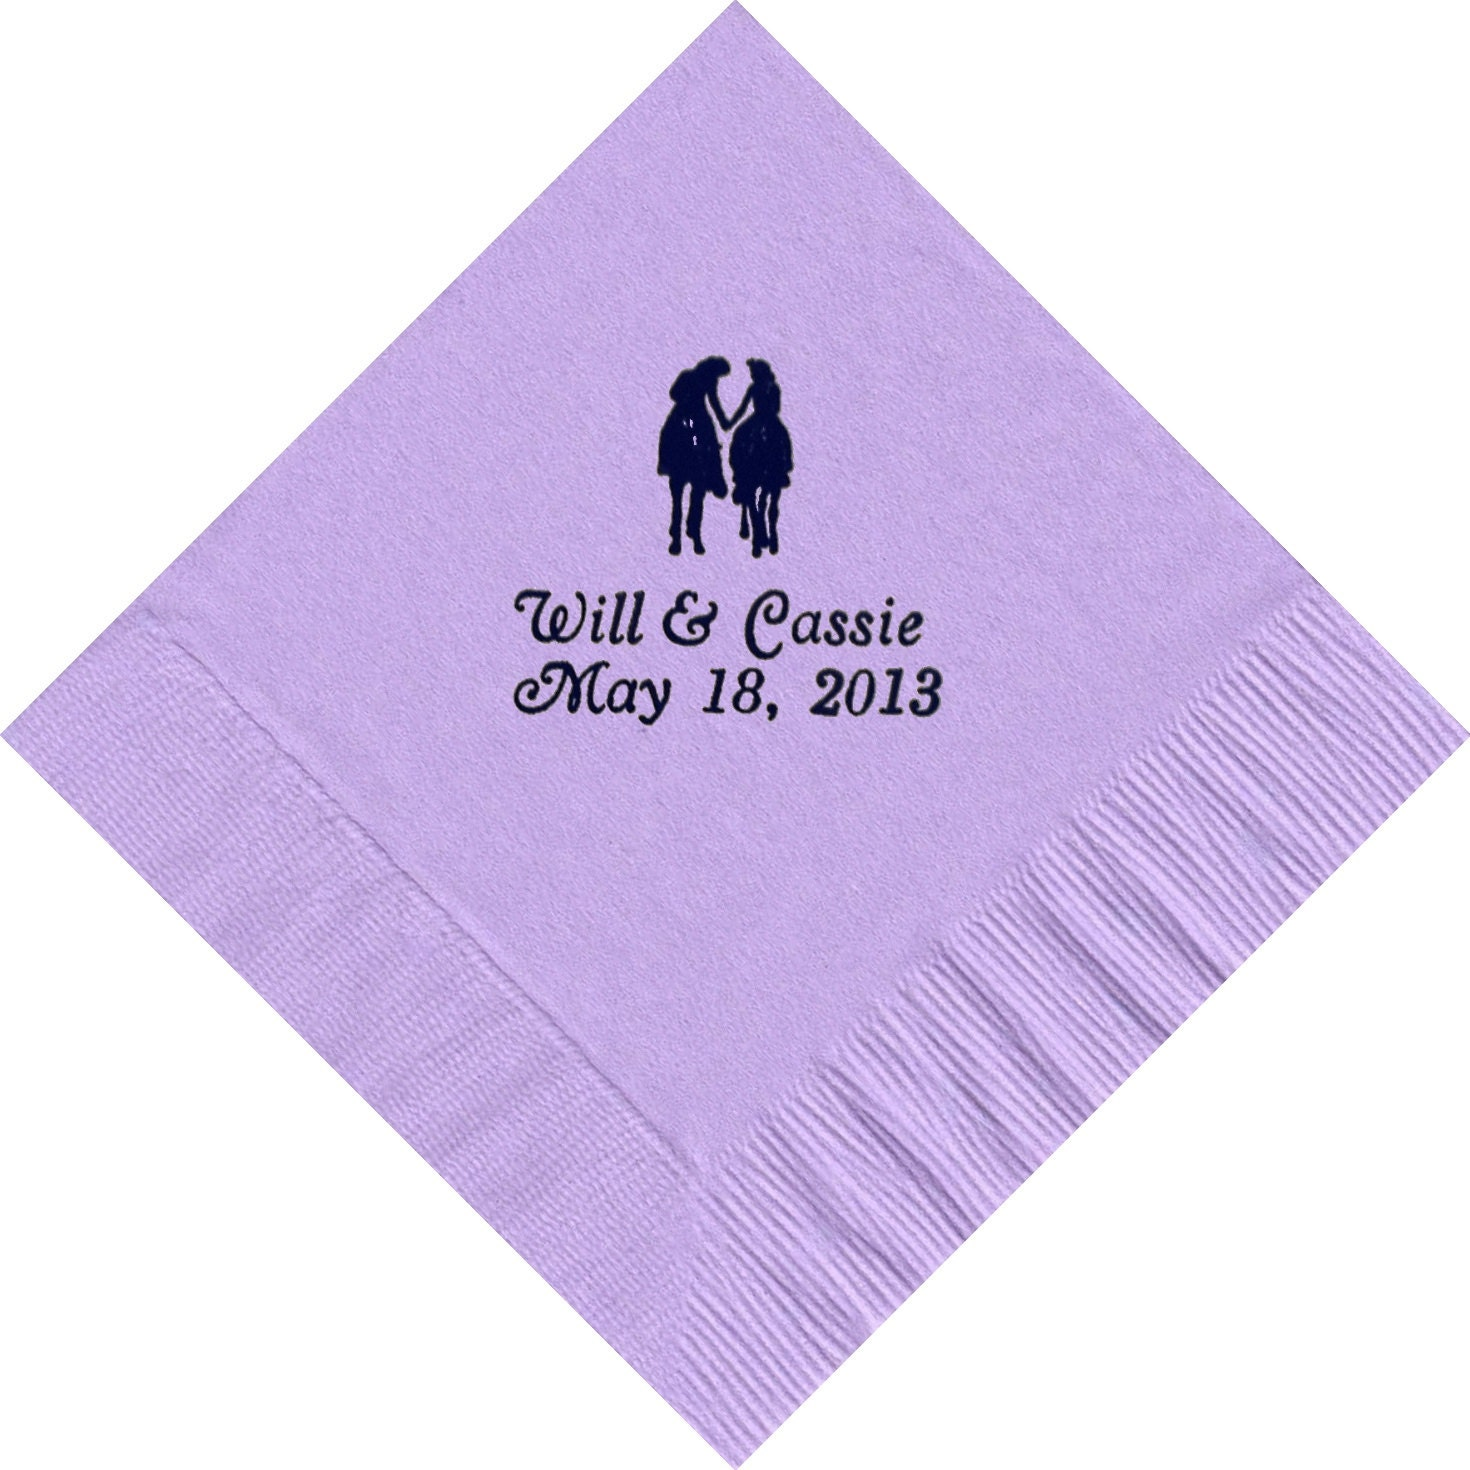 50 Western Romance logo Luncheon Dinner personalized napkins wedding engagement anniversary birthday holiday special event